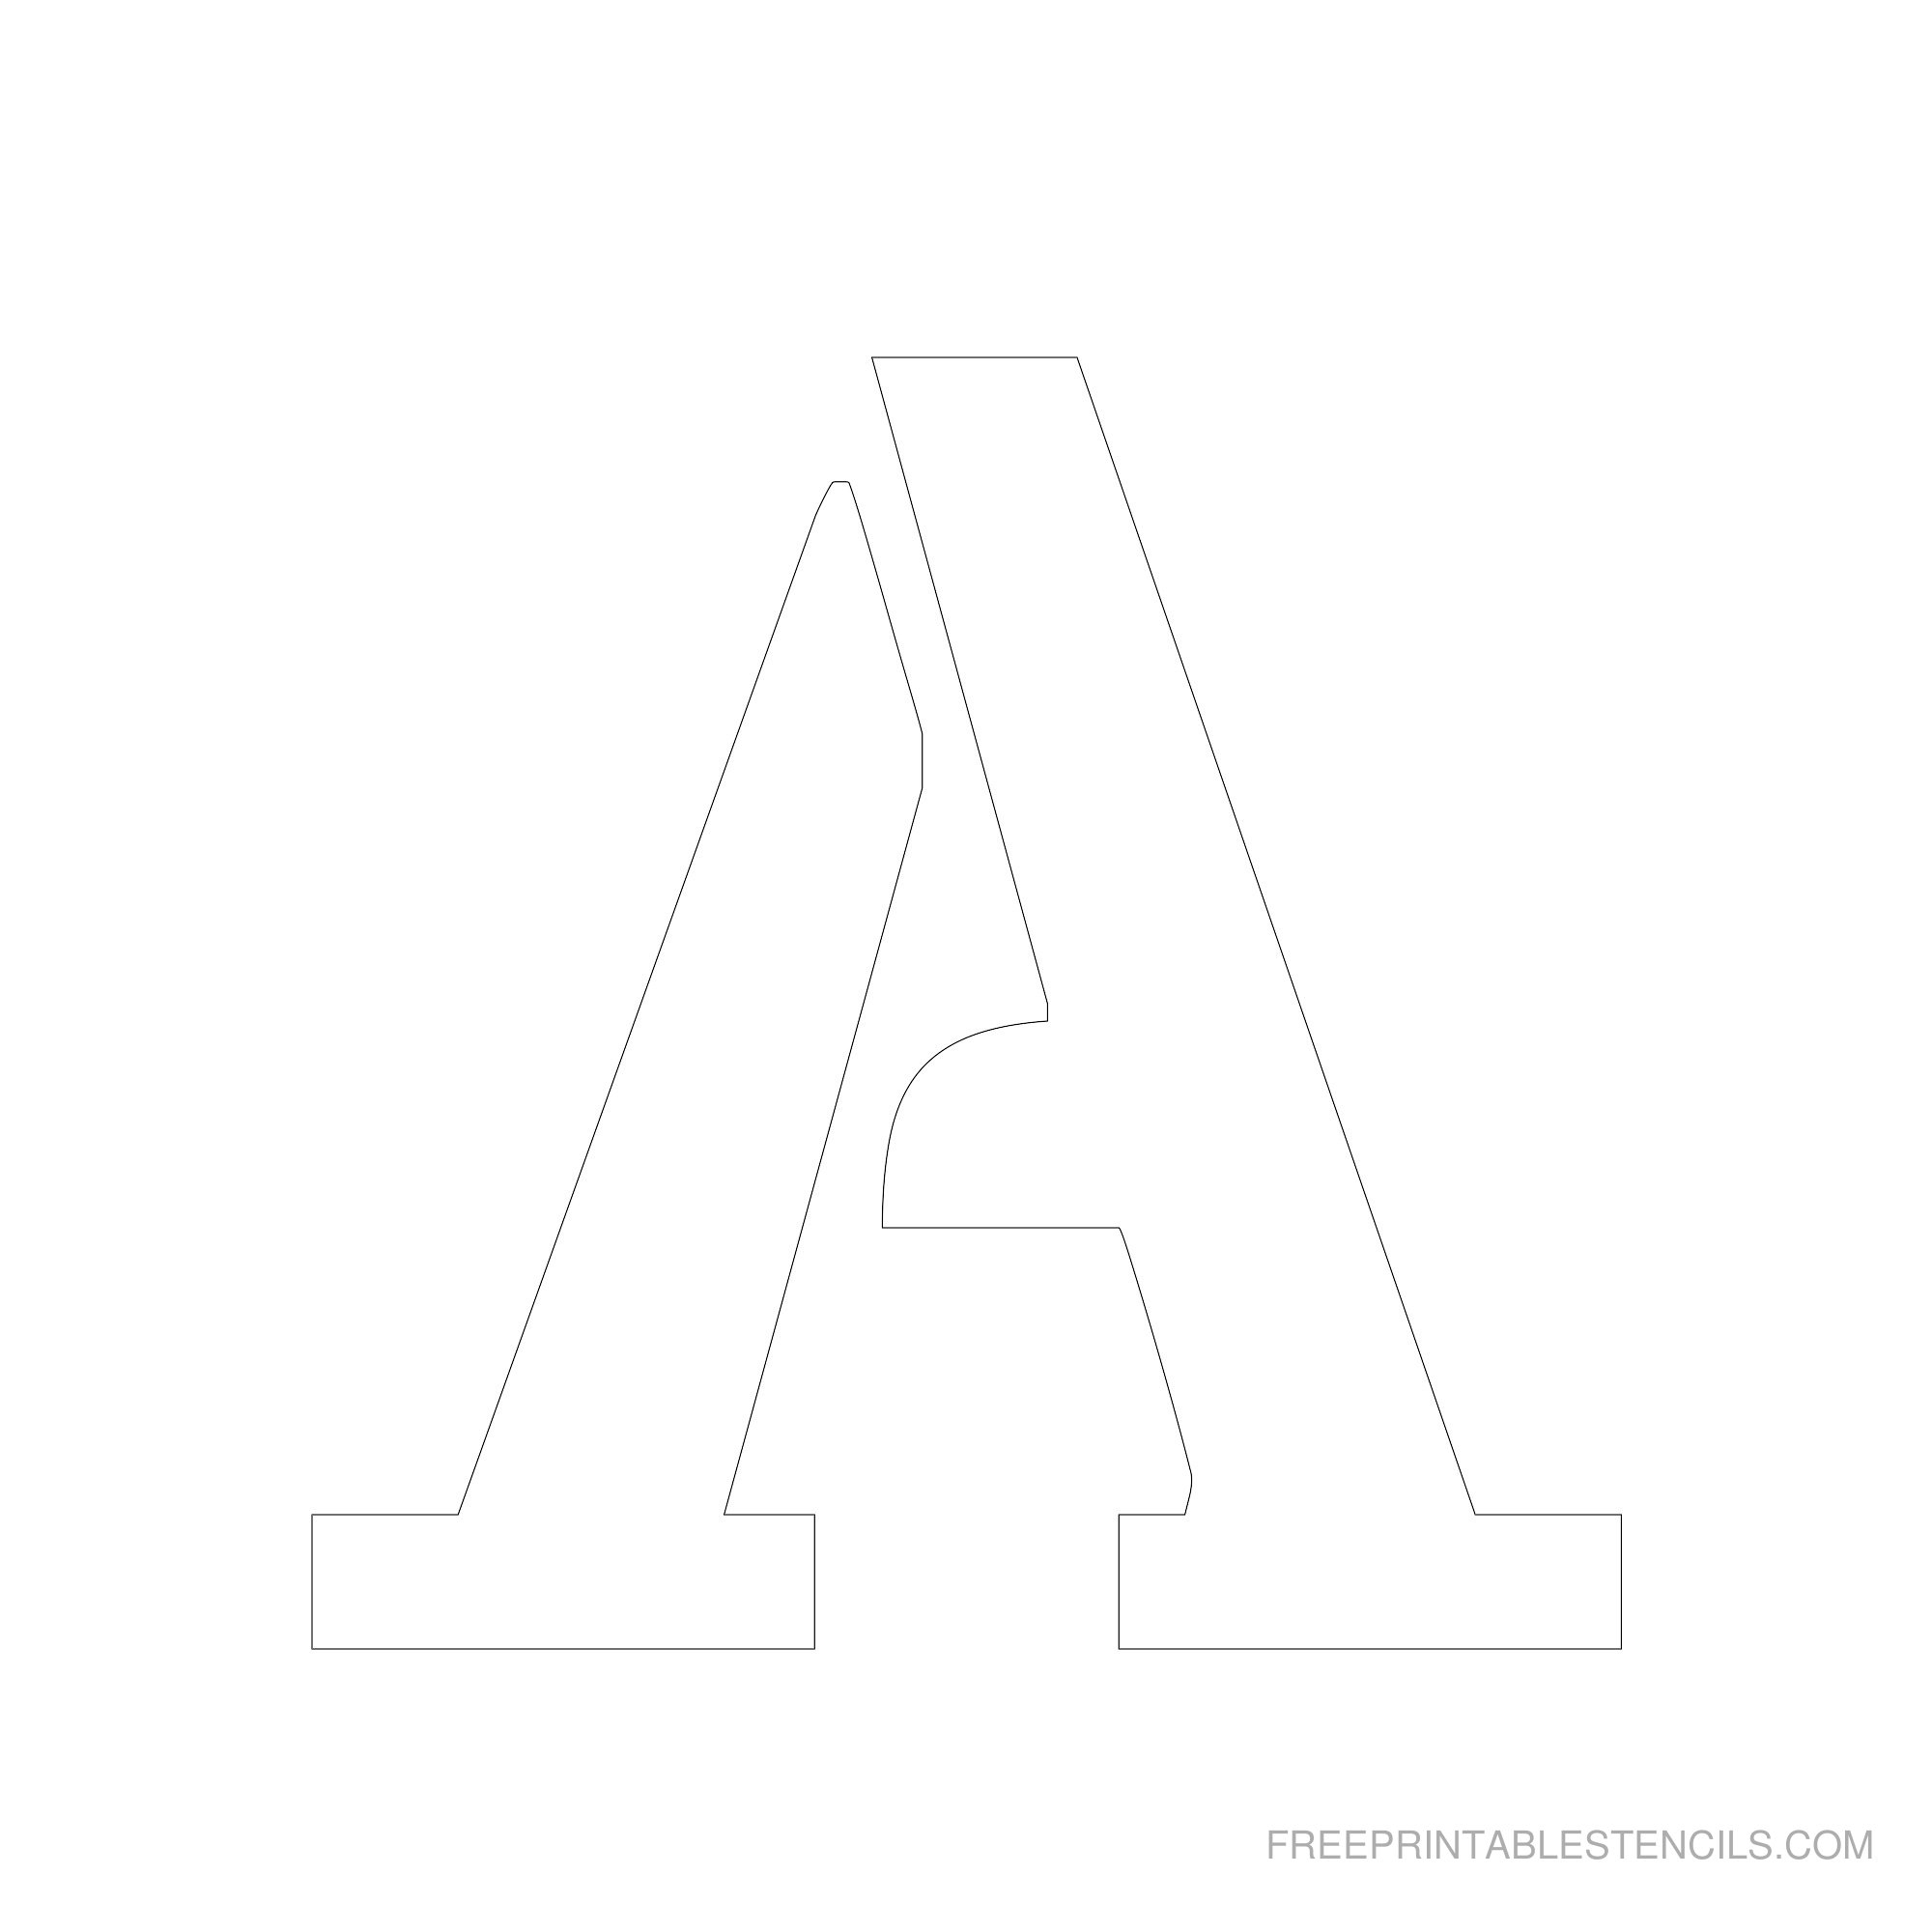 Printable 6 Inch Letter Stencils A-Z | Free Printable Stencils - Free Printable Alphabet Stencils